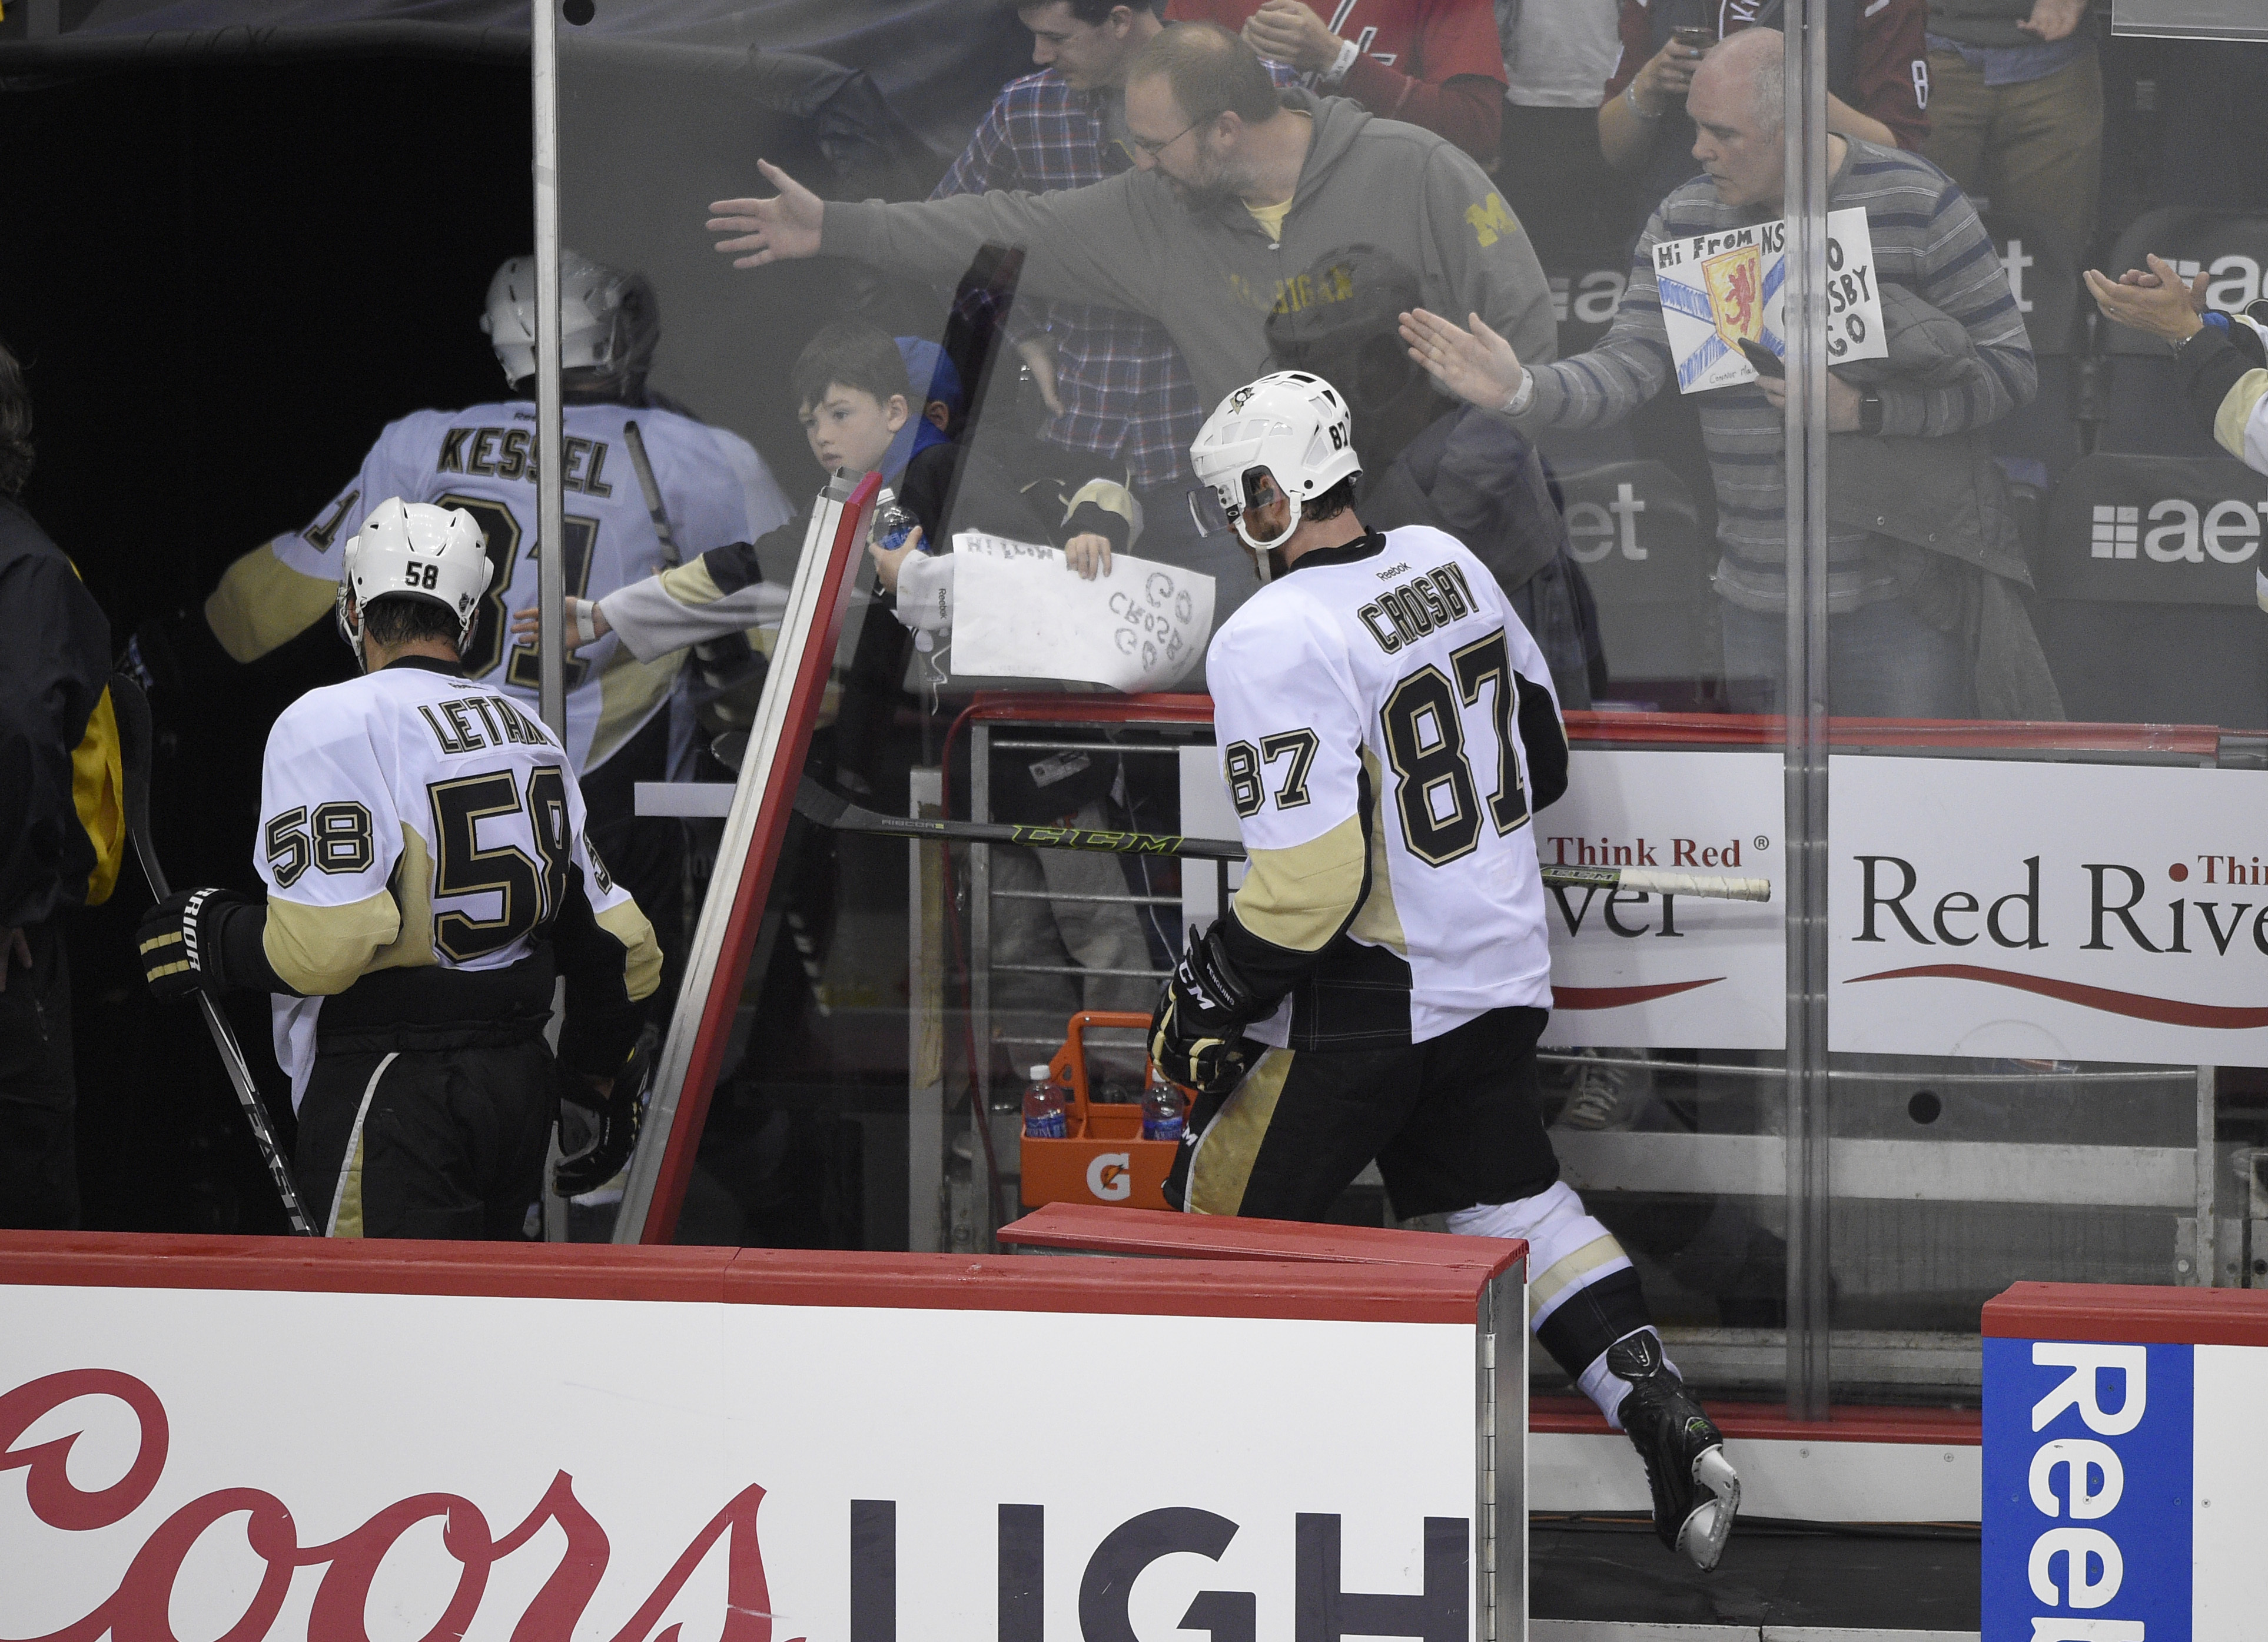 Pittsburgh Penguins center Sidney Crosby (87), Kris Letang (58) and Phil Kessel (81) leave the ice after losing 3-1 to the Washington Capitals in Game 5 in an NHL hockey Stanley Cup Eastern Conference semifinals, Saturday, May 7, 2016, in Washington. (AP